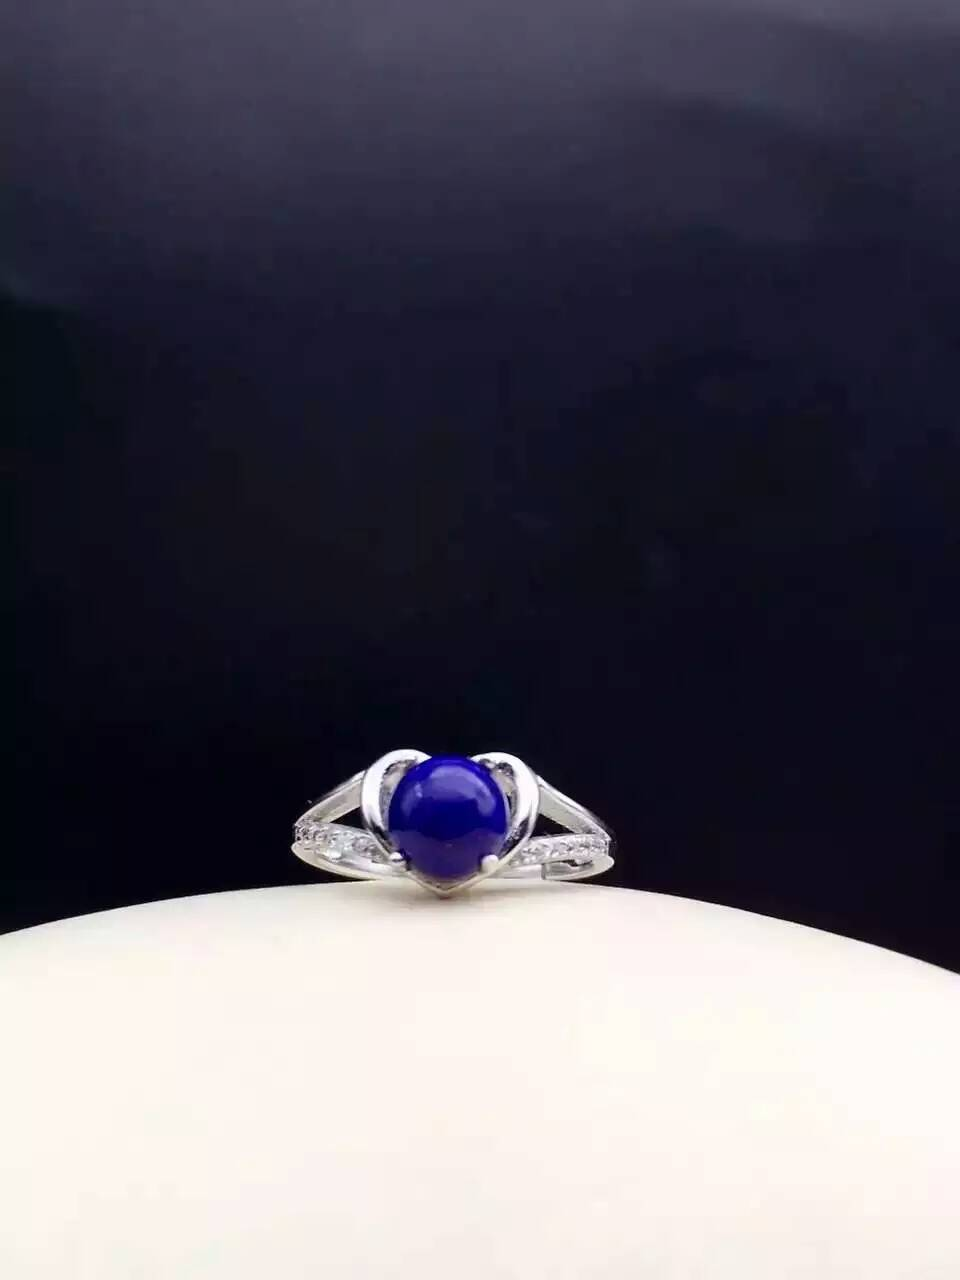 Natural blue lapis lazuli gem Ring Natural gemstone ring 925 sterling silver trendy Lovely heart women girl party gift Jewelry